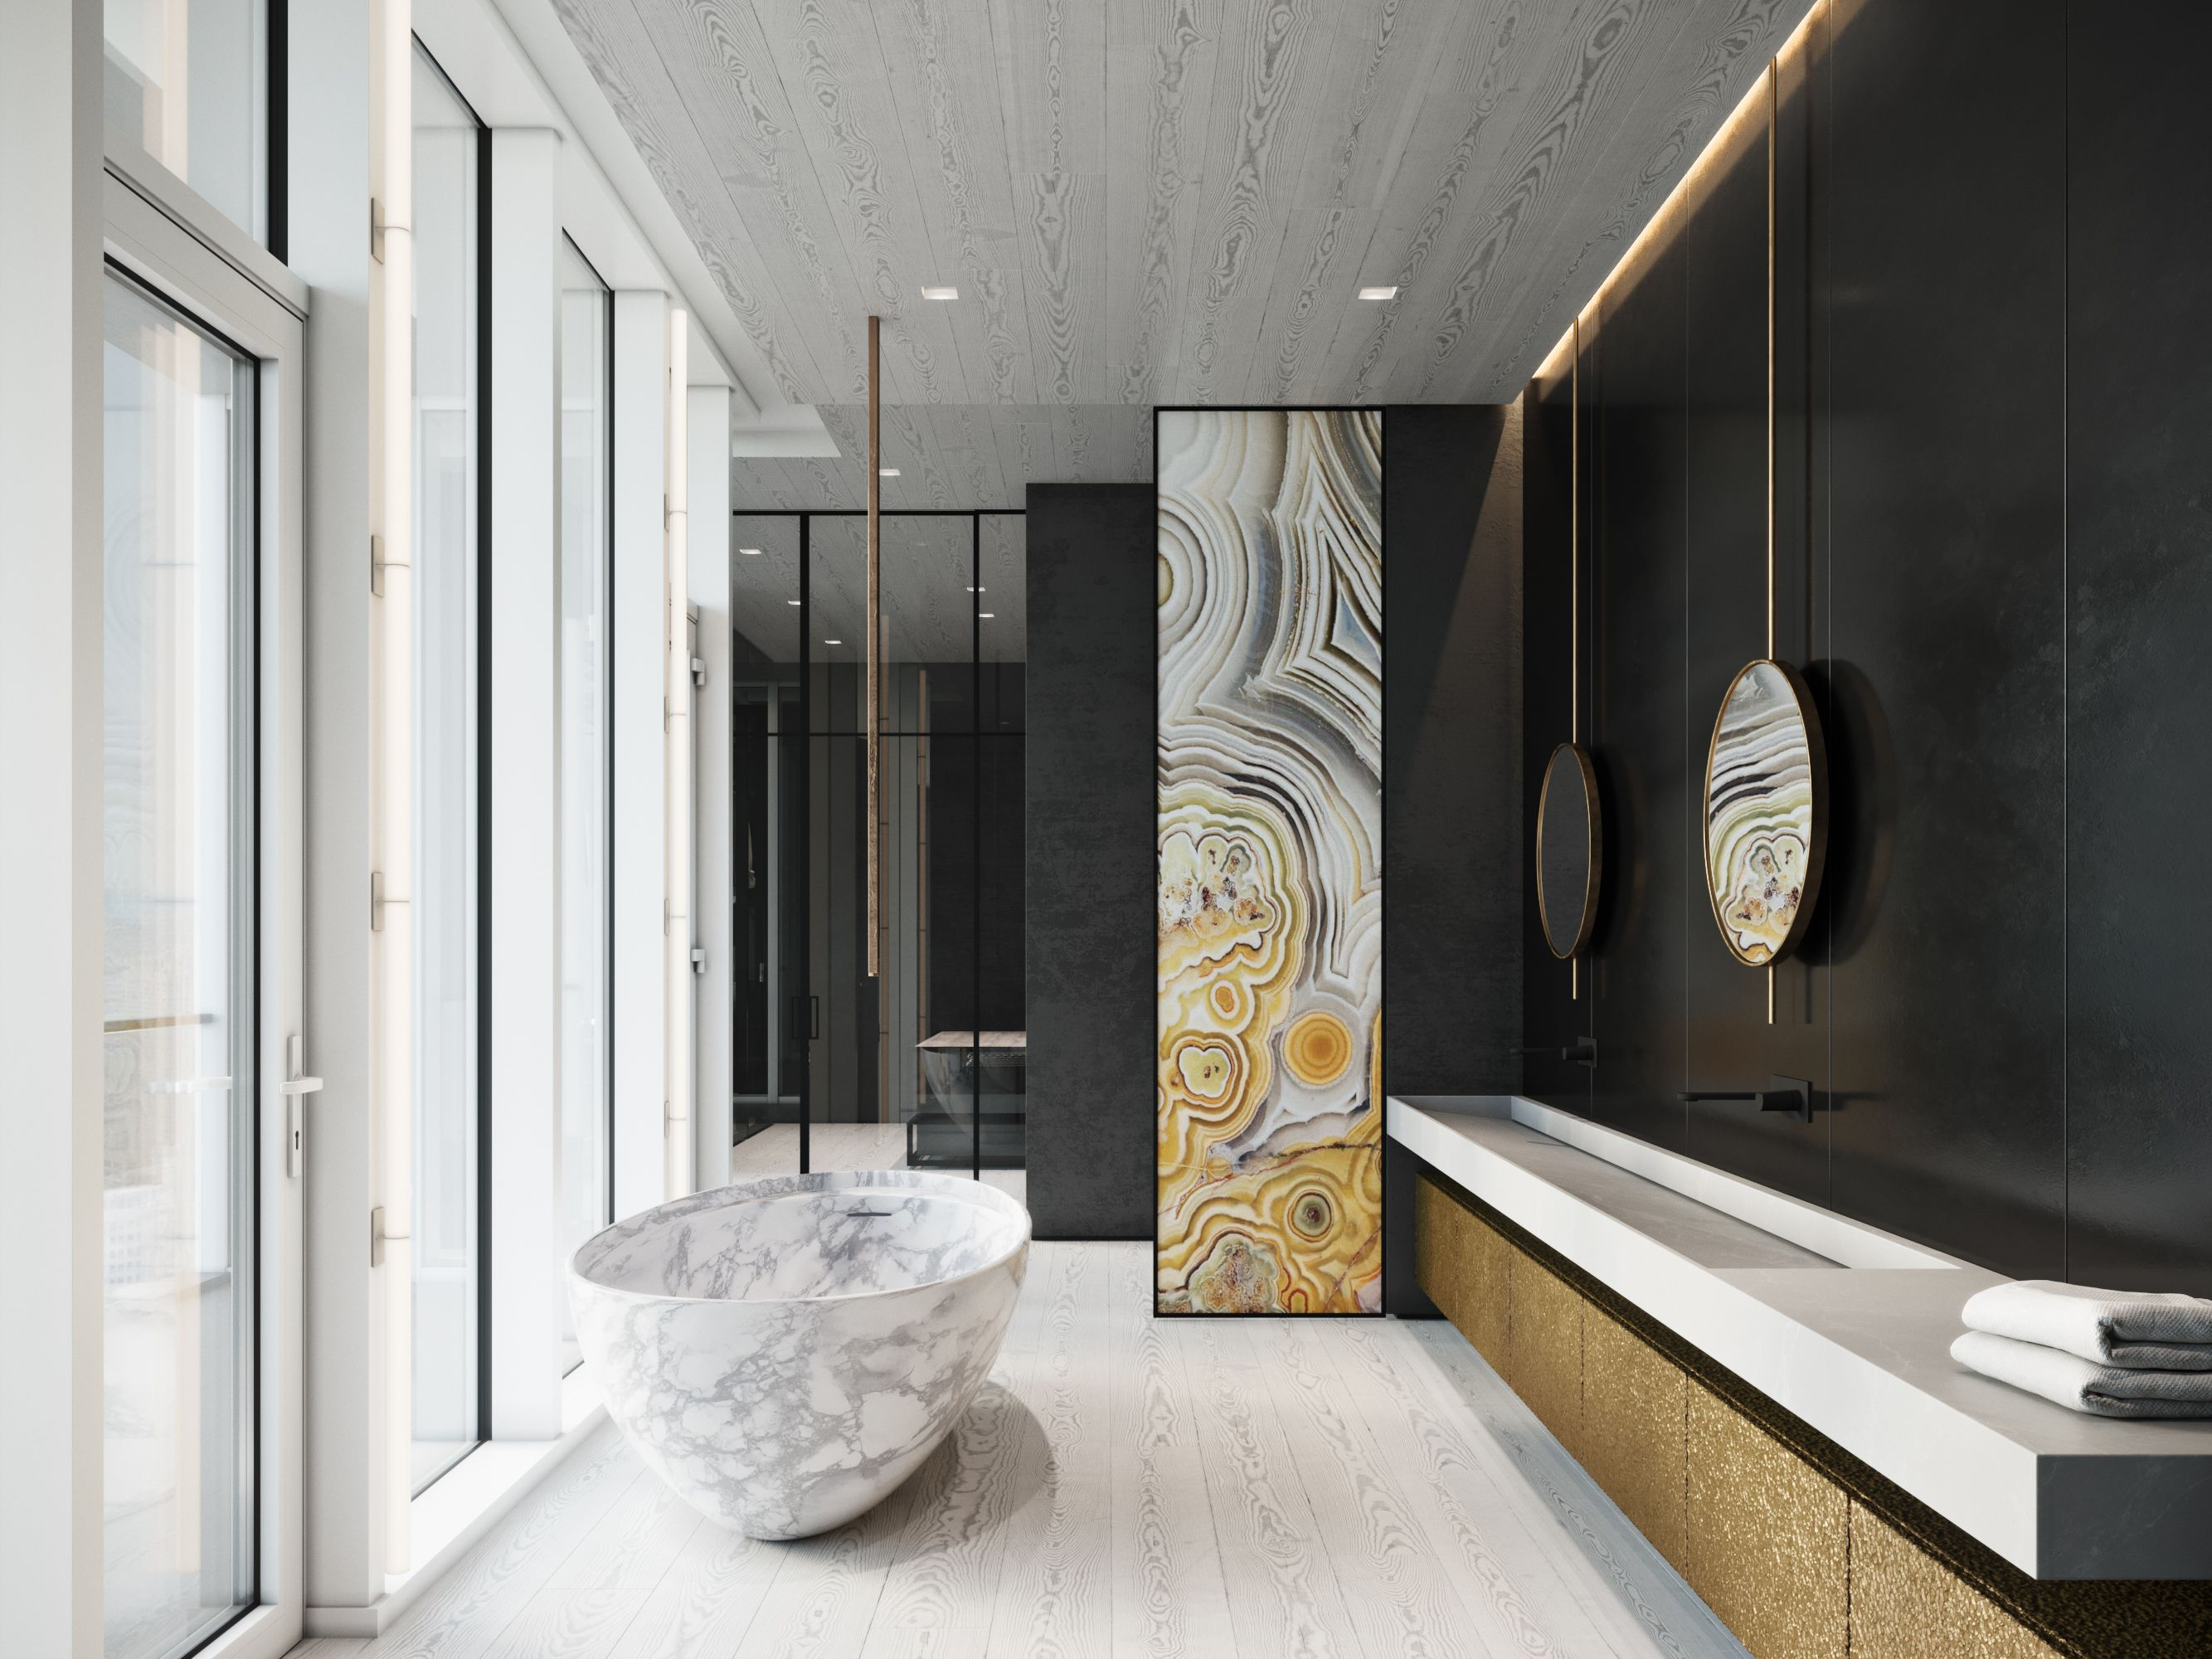 10 Tips for Creating an Ultra-Relaxing Master Bathroom